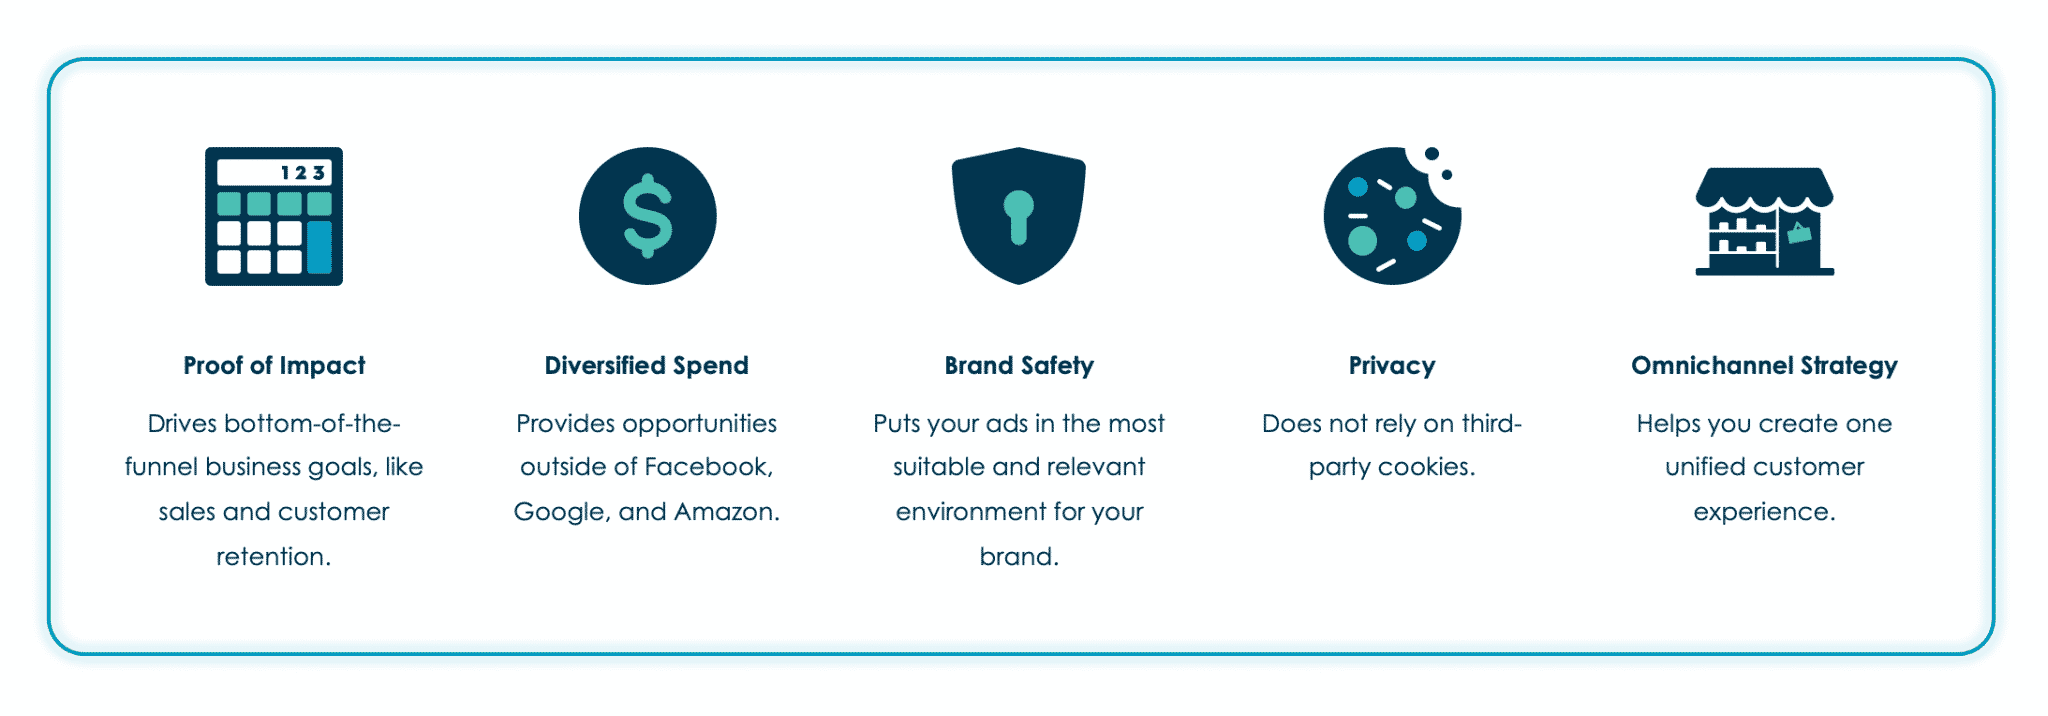 Benefits Key. Proof of Impact, Diversified Spend, Brand Safety, Privacy, and Omnichannel Strategy.